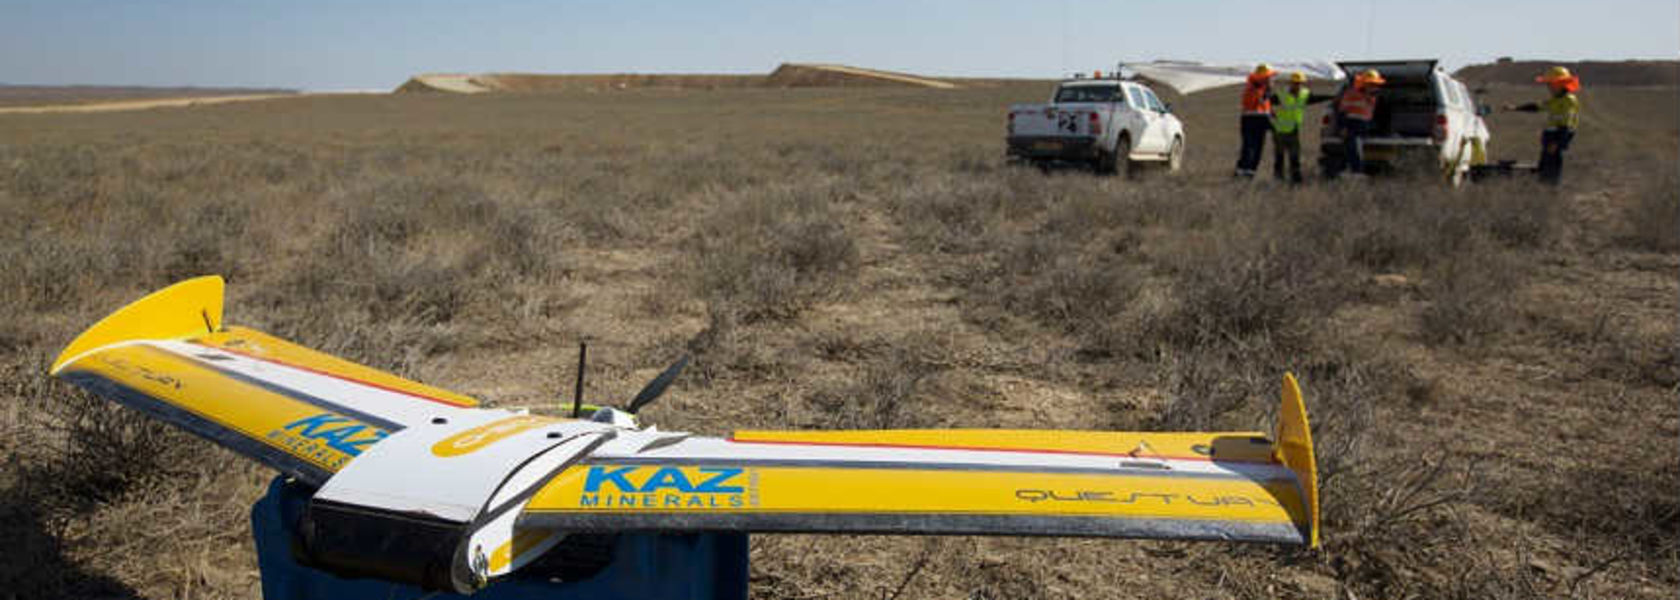 KAZ: 'UAS is not just a gadget with a remote'